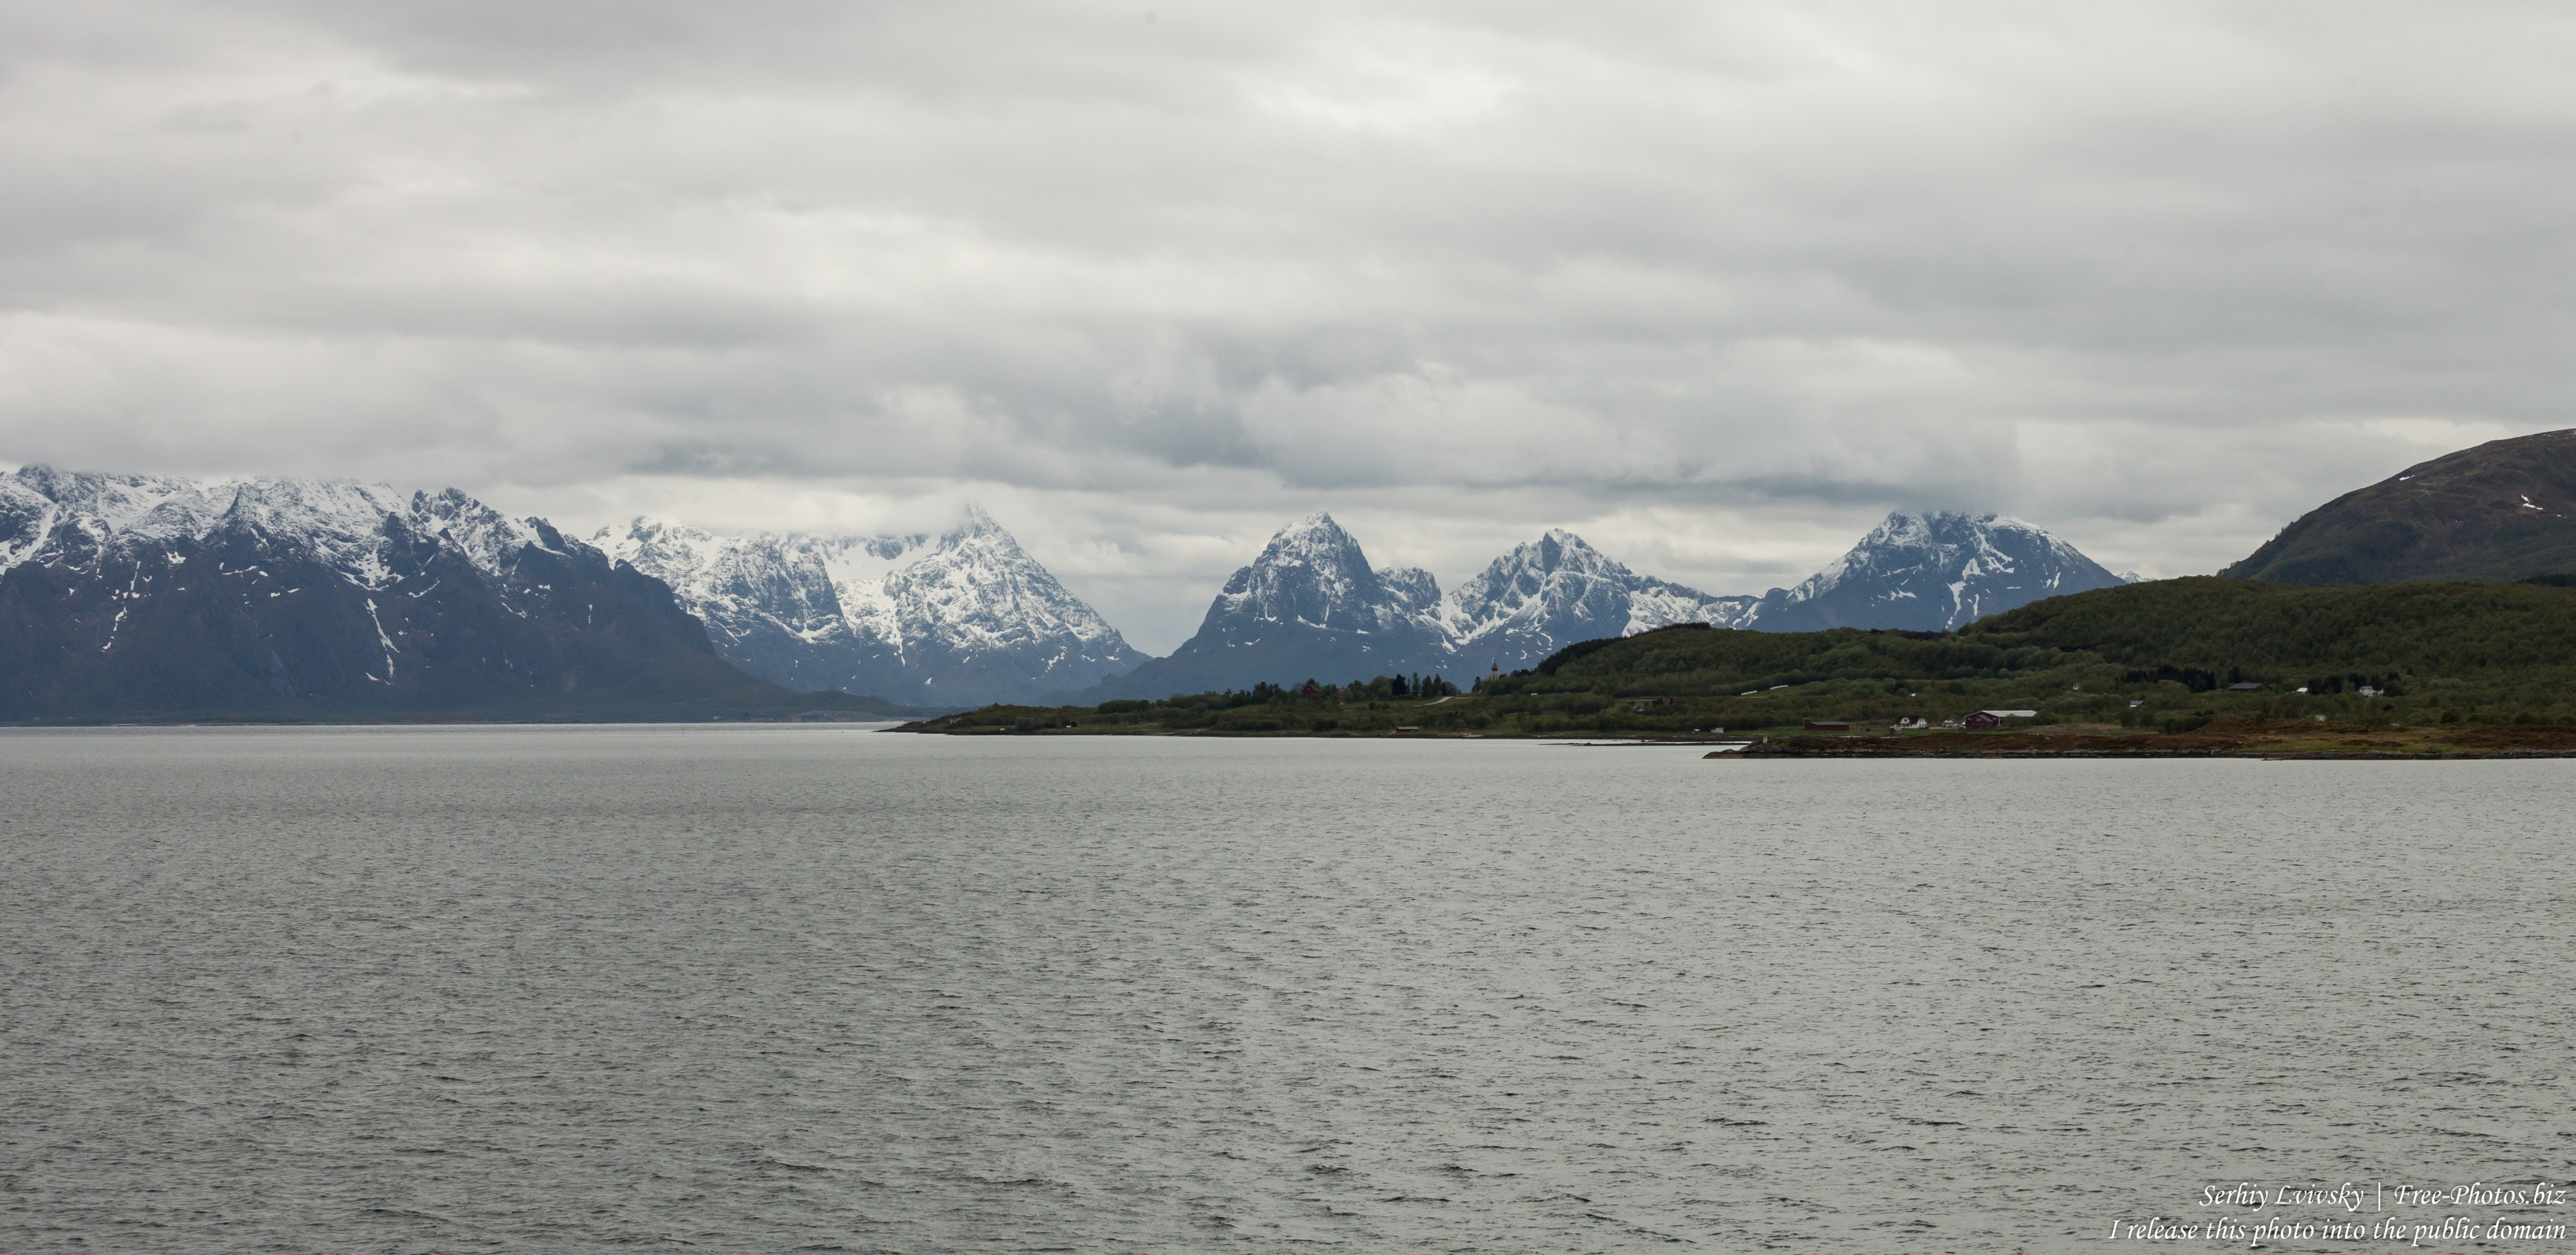 way from Sortland to Stokmarknes, Norway, photographed in June 2018 by Serhiy Lvivsky, picture 10